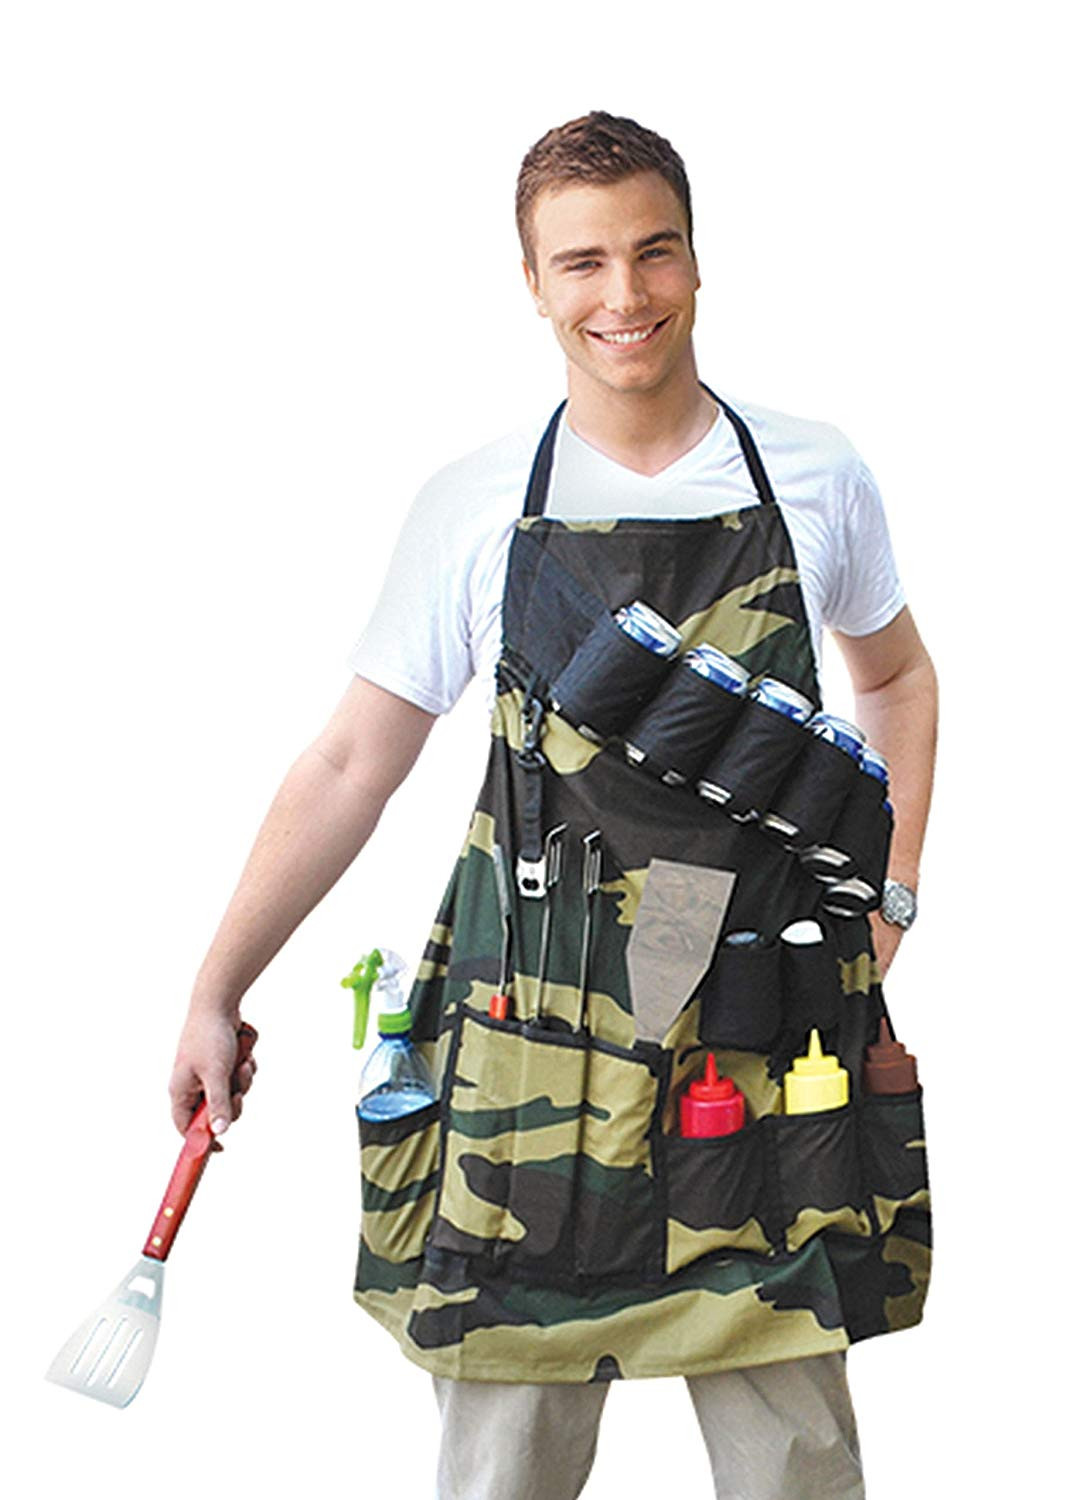 Best Funny BBQ Grilling Apron